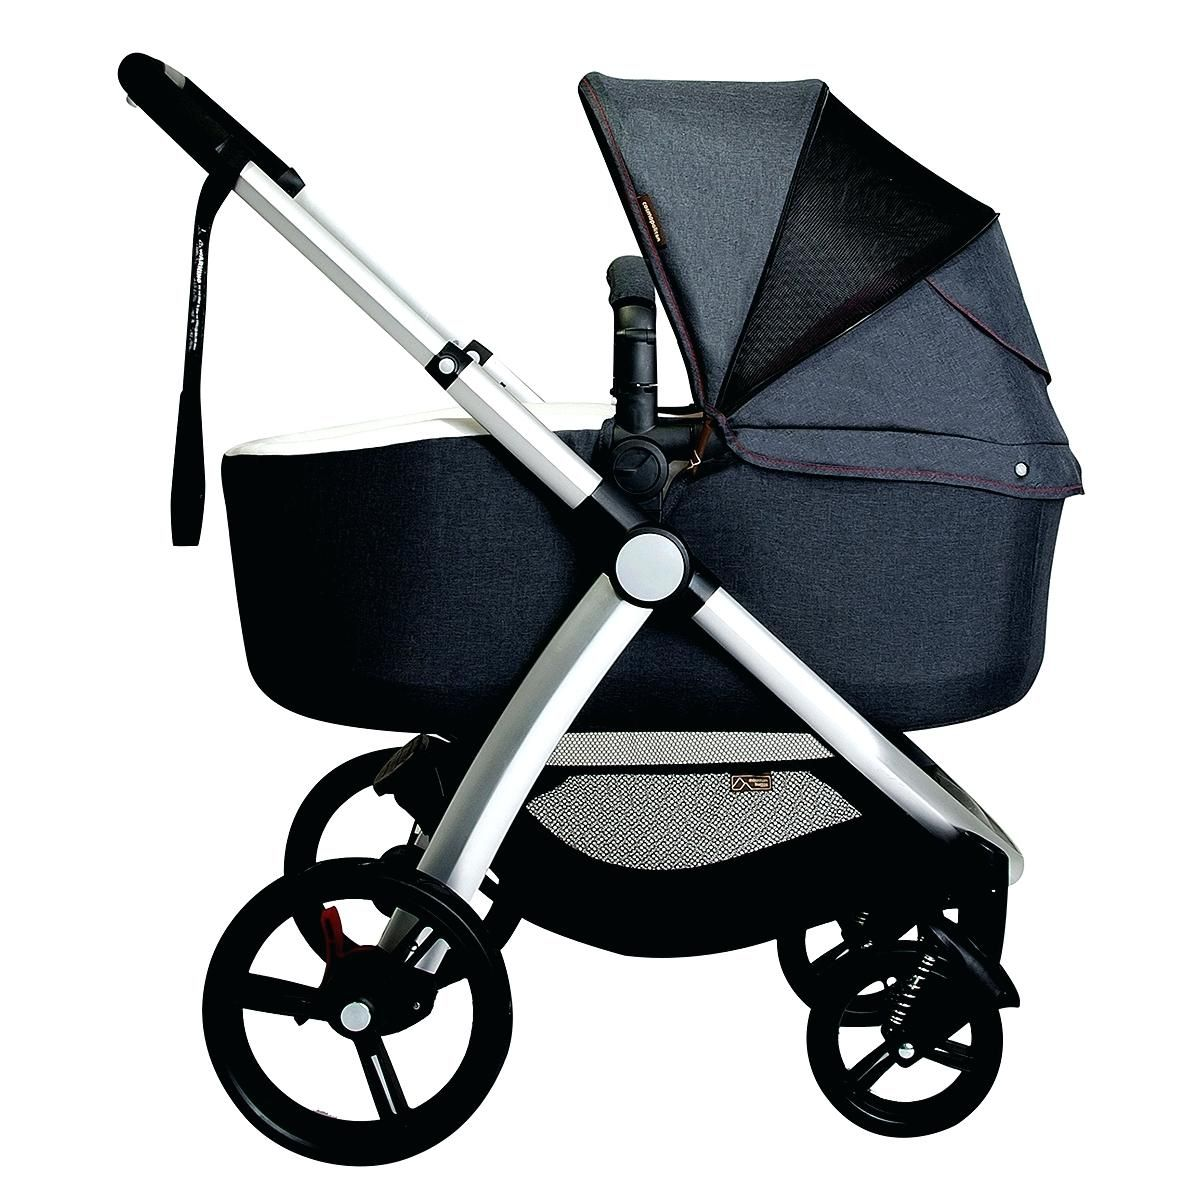 Doppel Kinderwagen Urban Jungle Schlanke Baby Kinderwagen Mountain Buggy Cosmopolitan Wanne